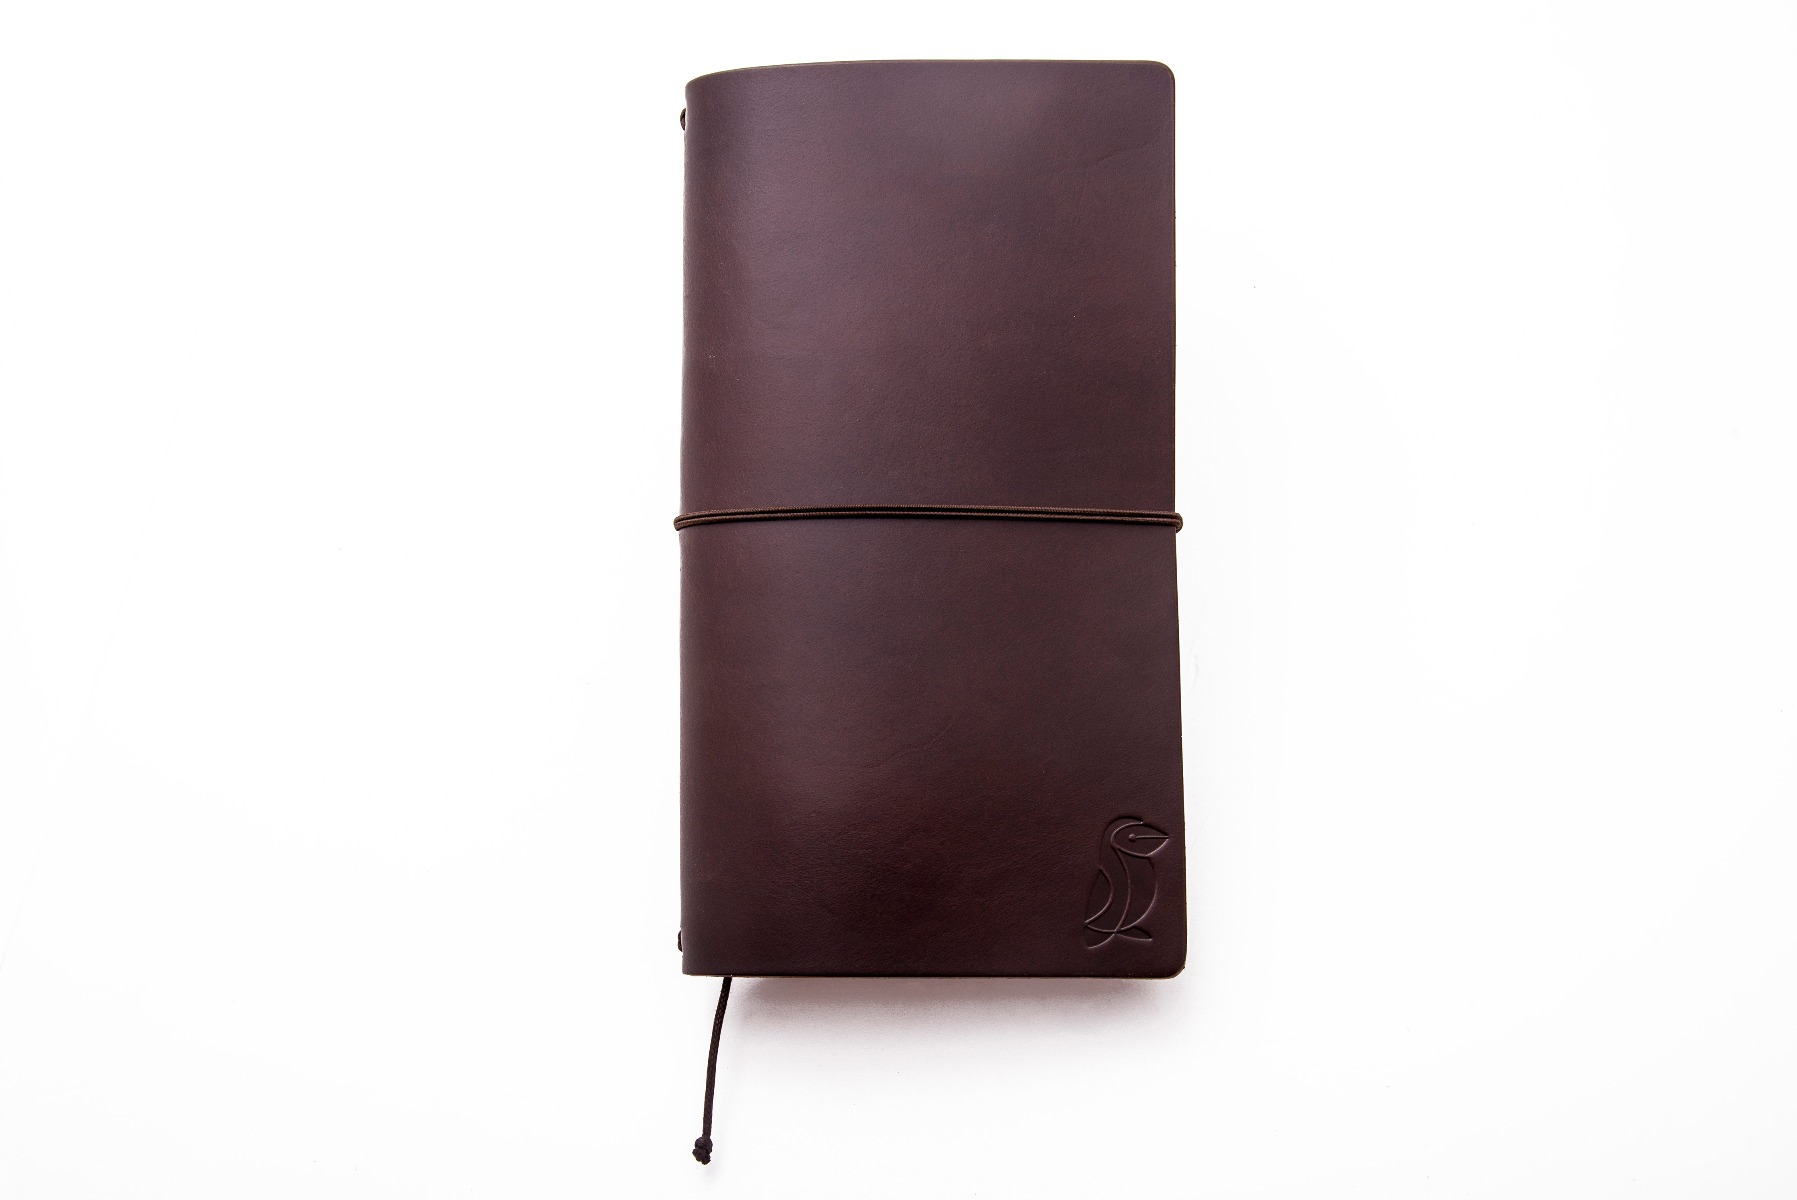 Libreta Traveler de Cuero Chocolate